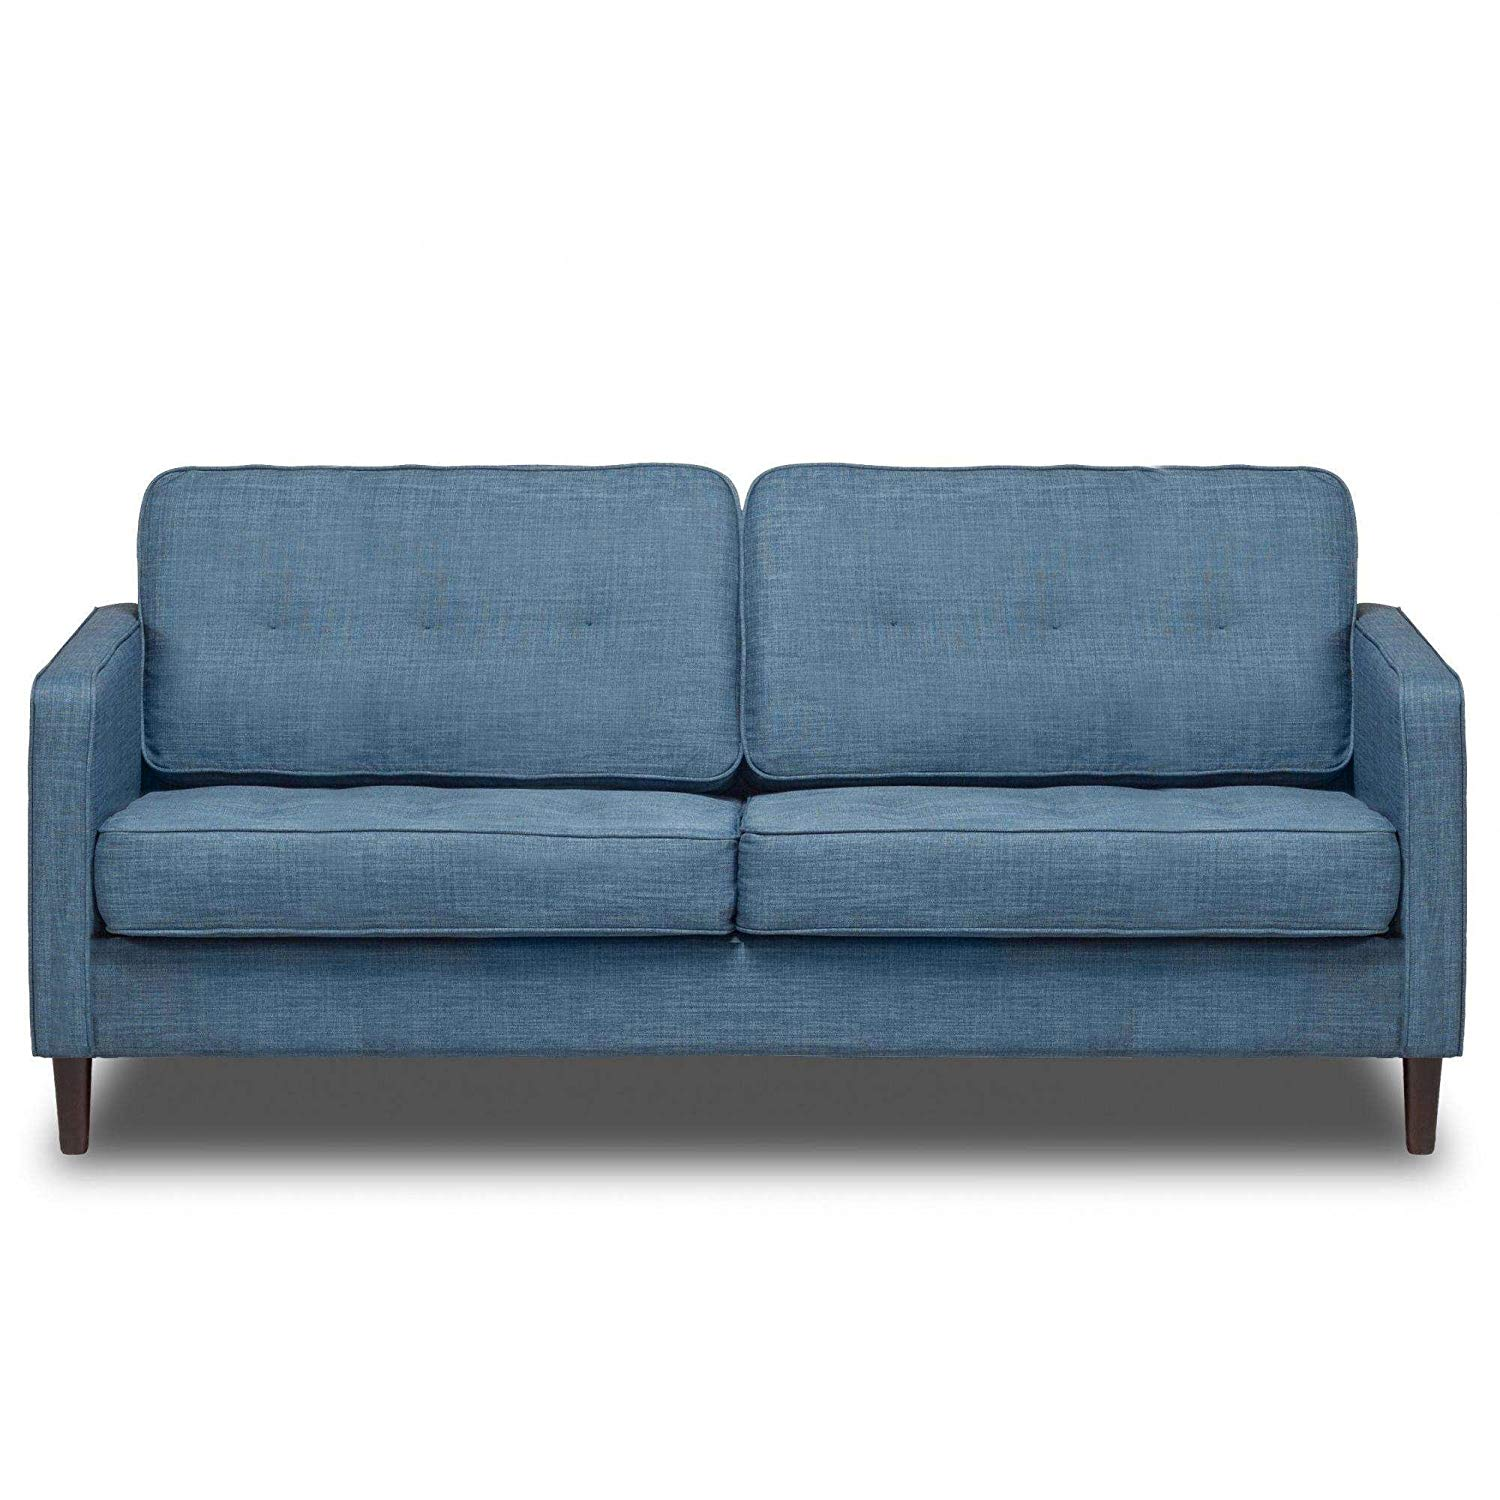 """Aqua 66"""" Upholstered Sofa, Pocket Coil Seat Cushions, Solid Wood Legs, Hardwood Solids, Metal Seat Frame, Removable Slip Cover, Bundle with Our Expert Guide with Tips for Home Arrangement"""